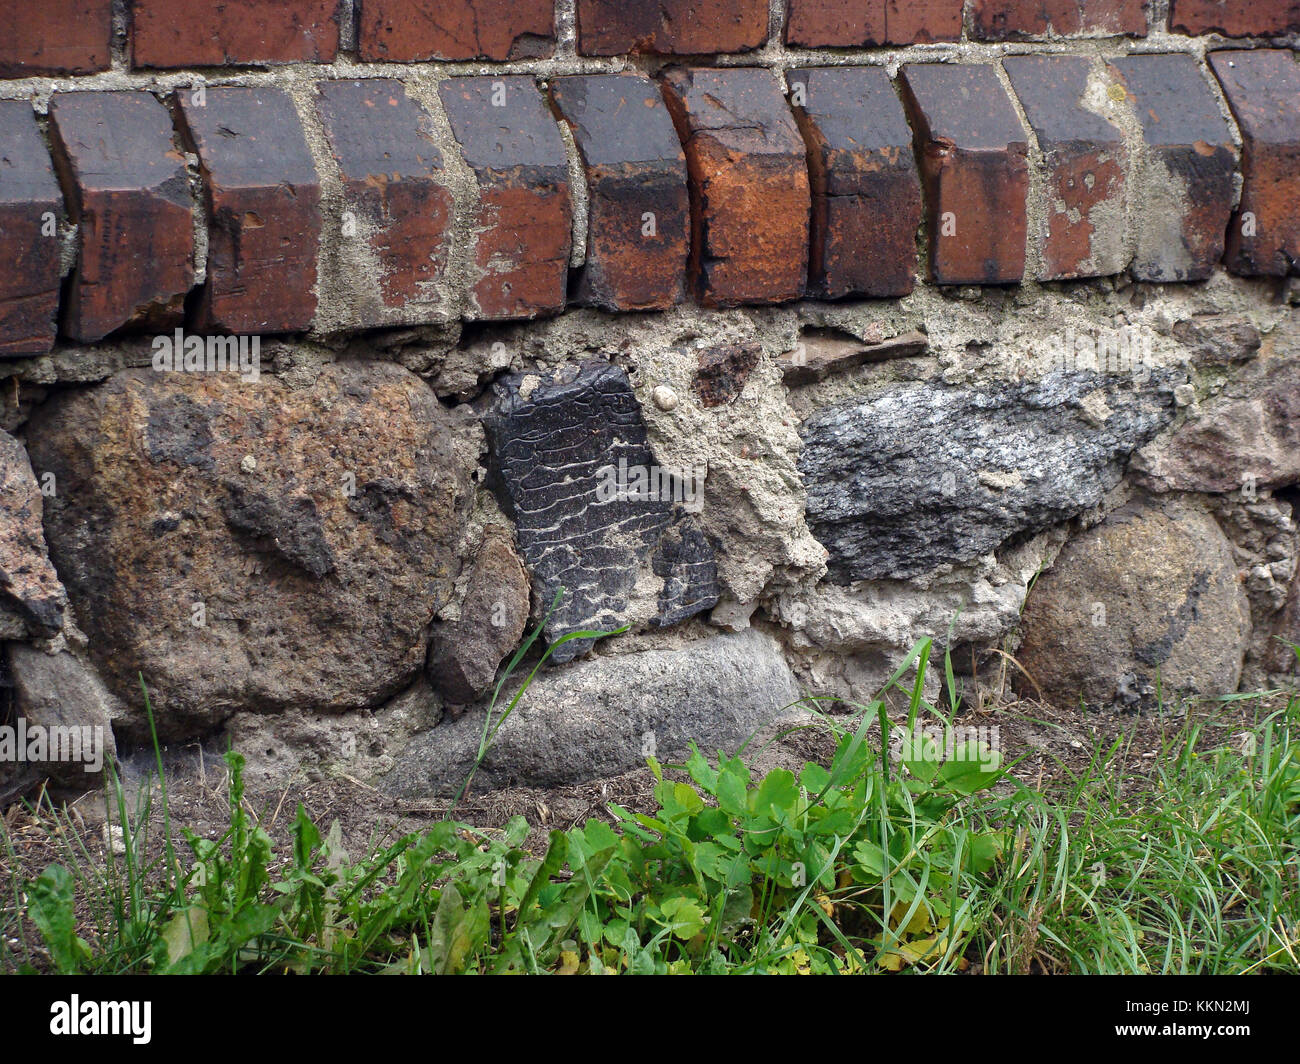 Retro Stone Foundation Of Red Brick House Close Up Stock Photo Alamy